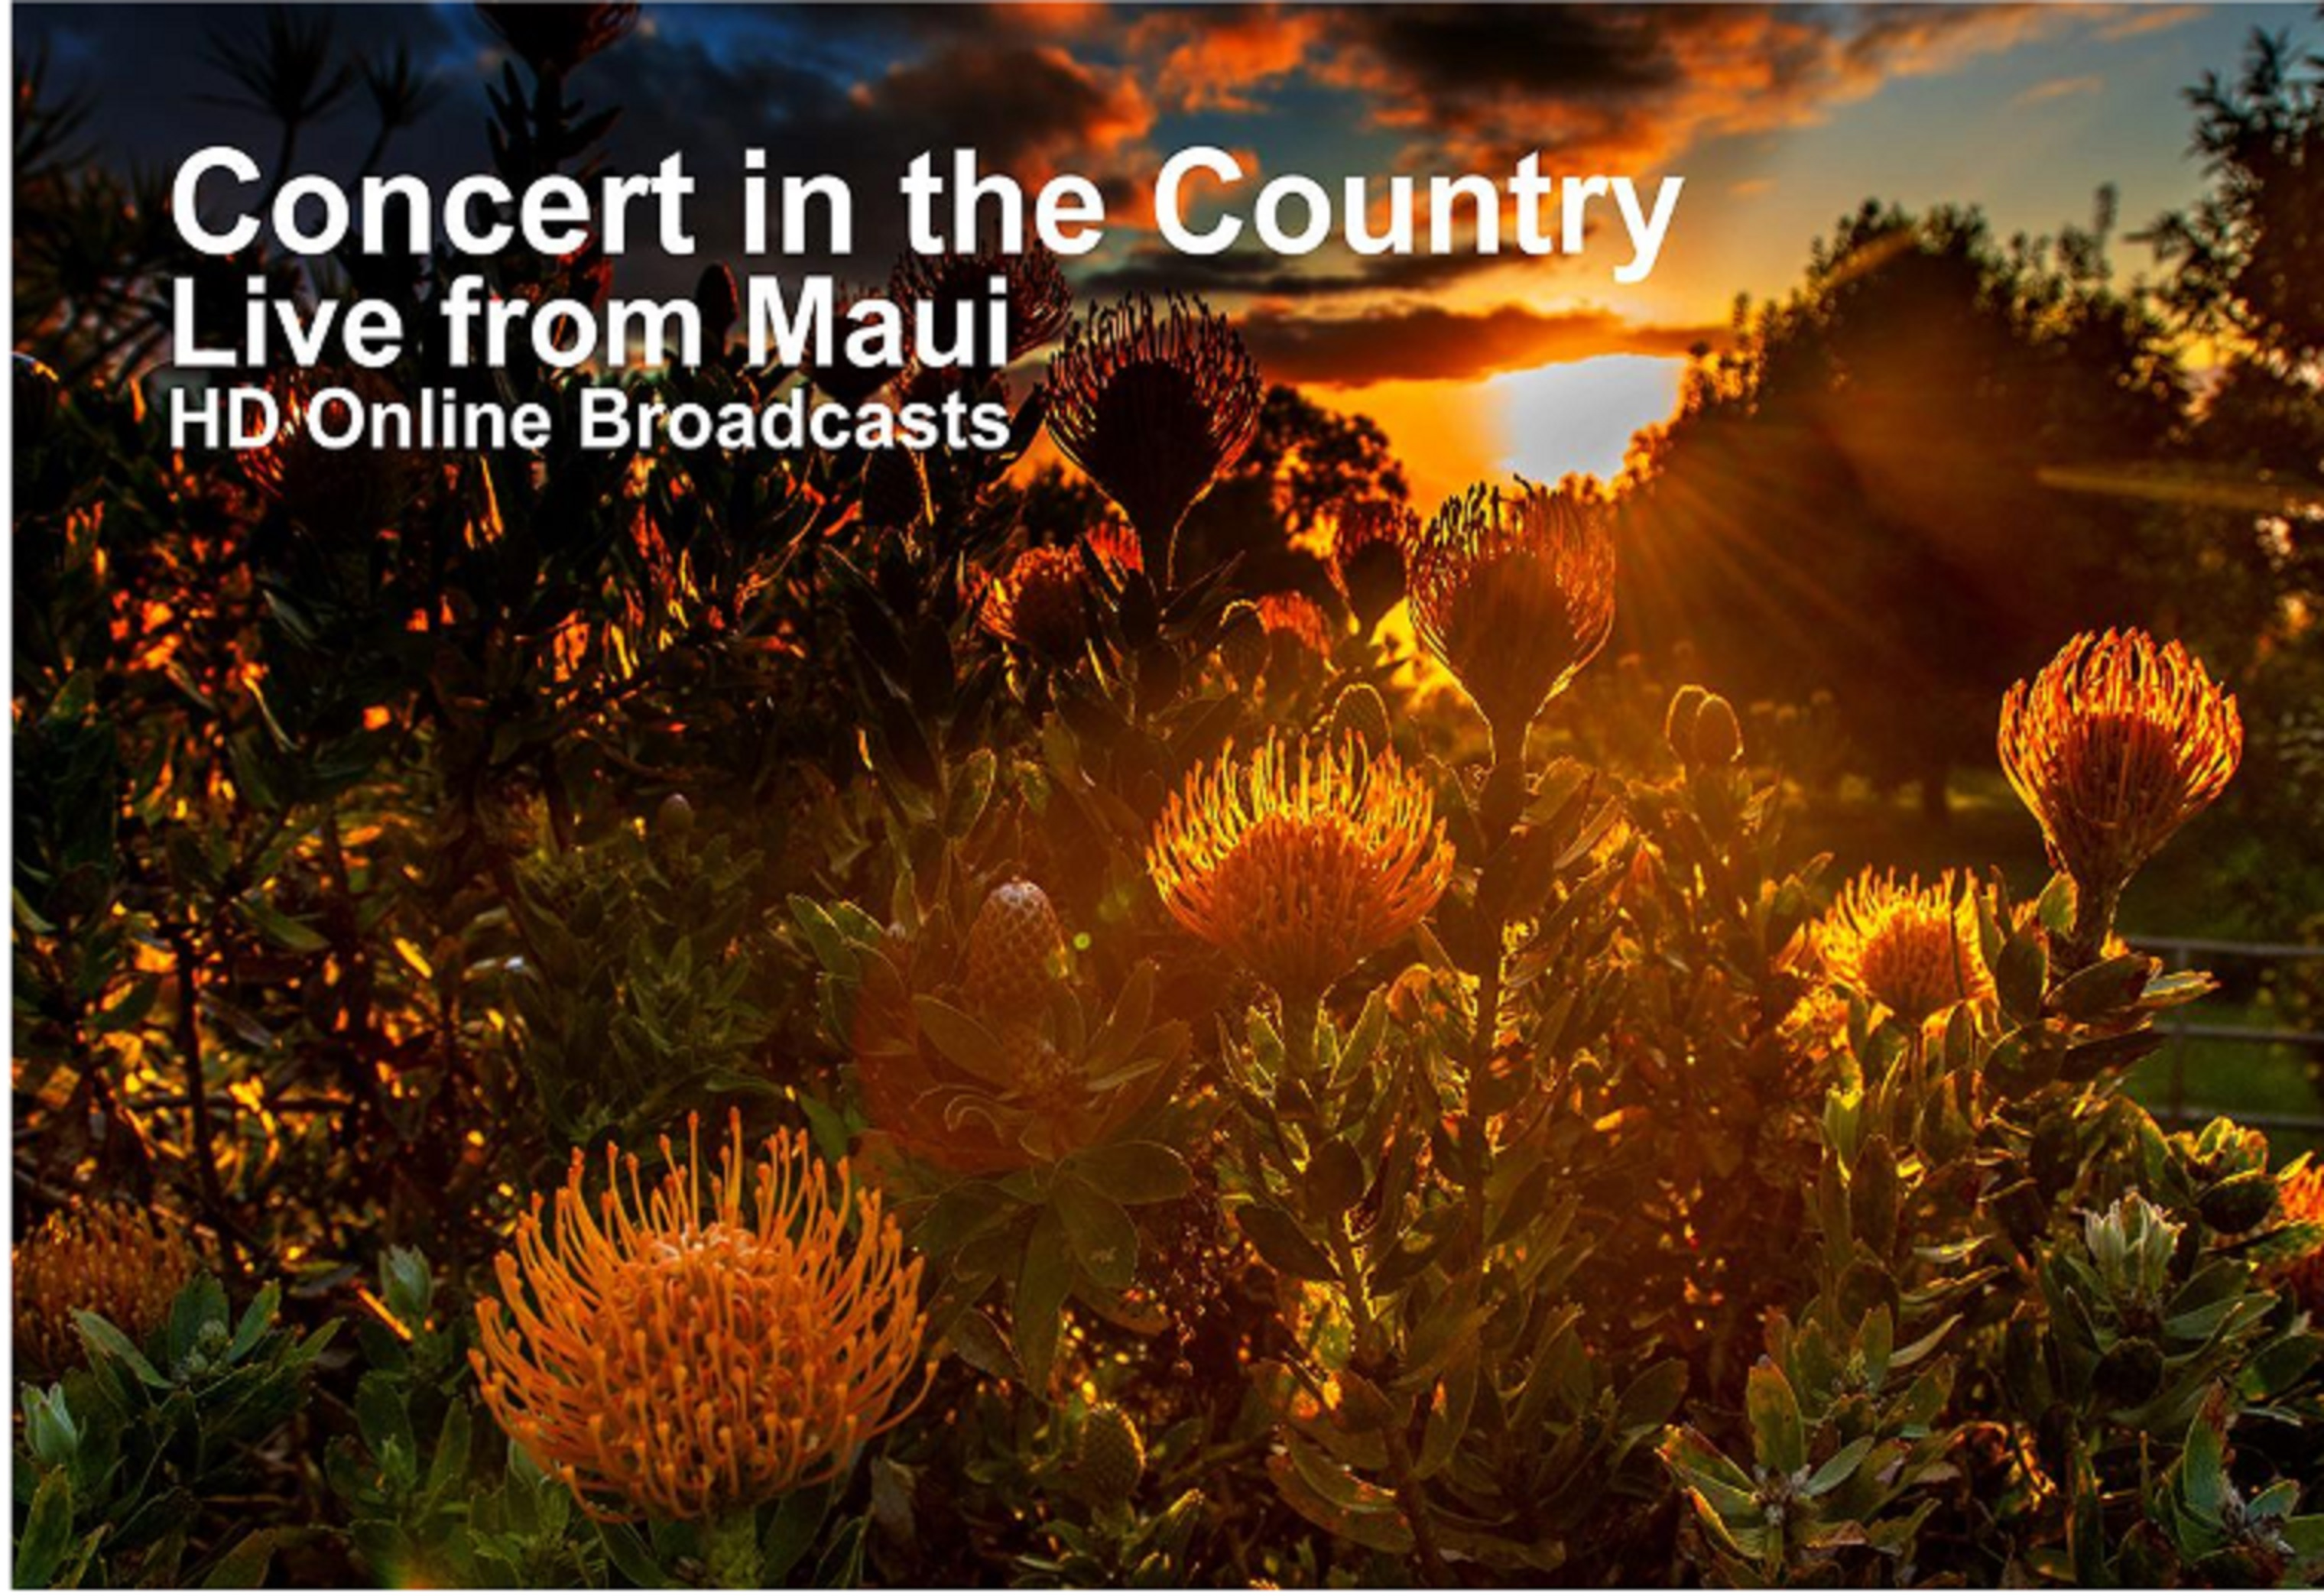 TWO CONCERTS BROADCAST LIVE FROM MAUI FEATURING A GRAMMY AWARD-WINNING HAWAIIAN LEGEND AND A RISING STAR